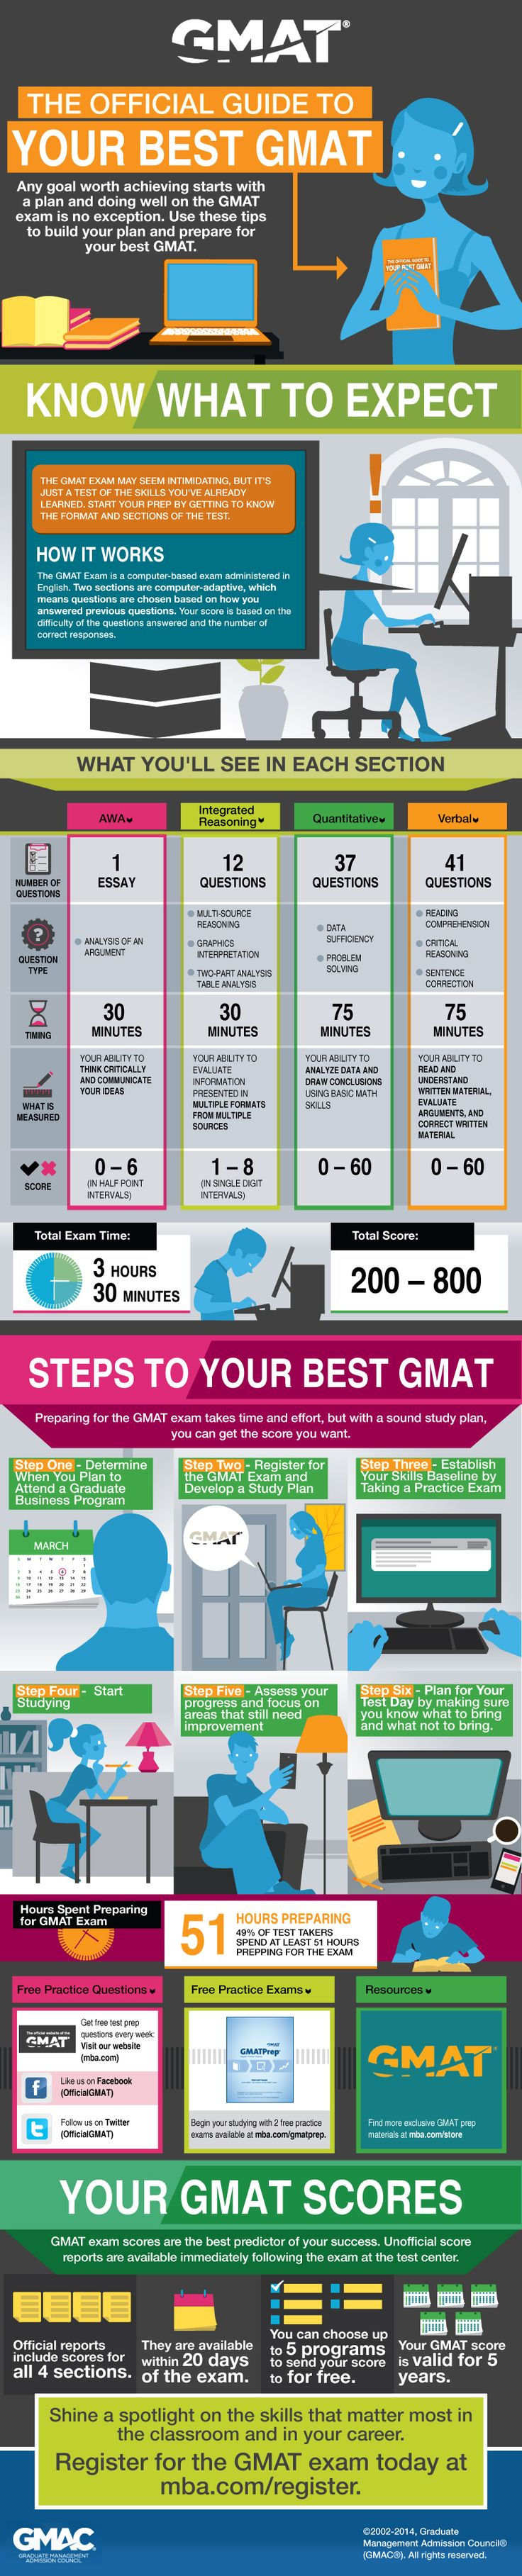 The Official Guide to Your Best GMAT Exam: Any goal worth achieving starts  with a